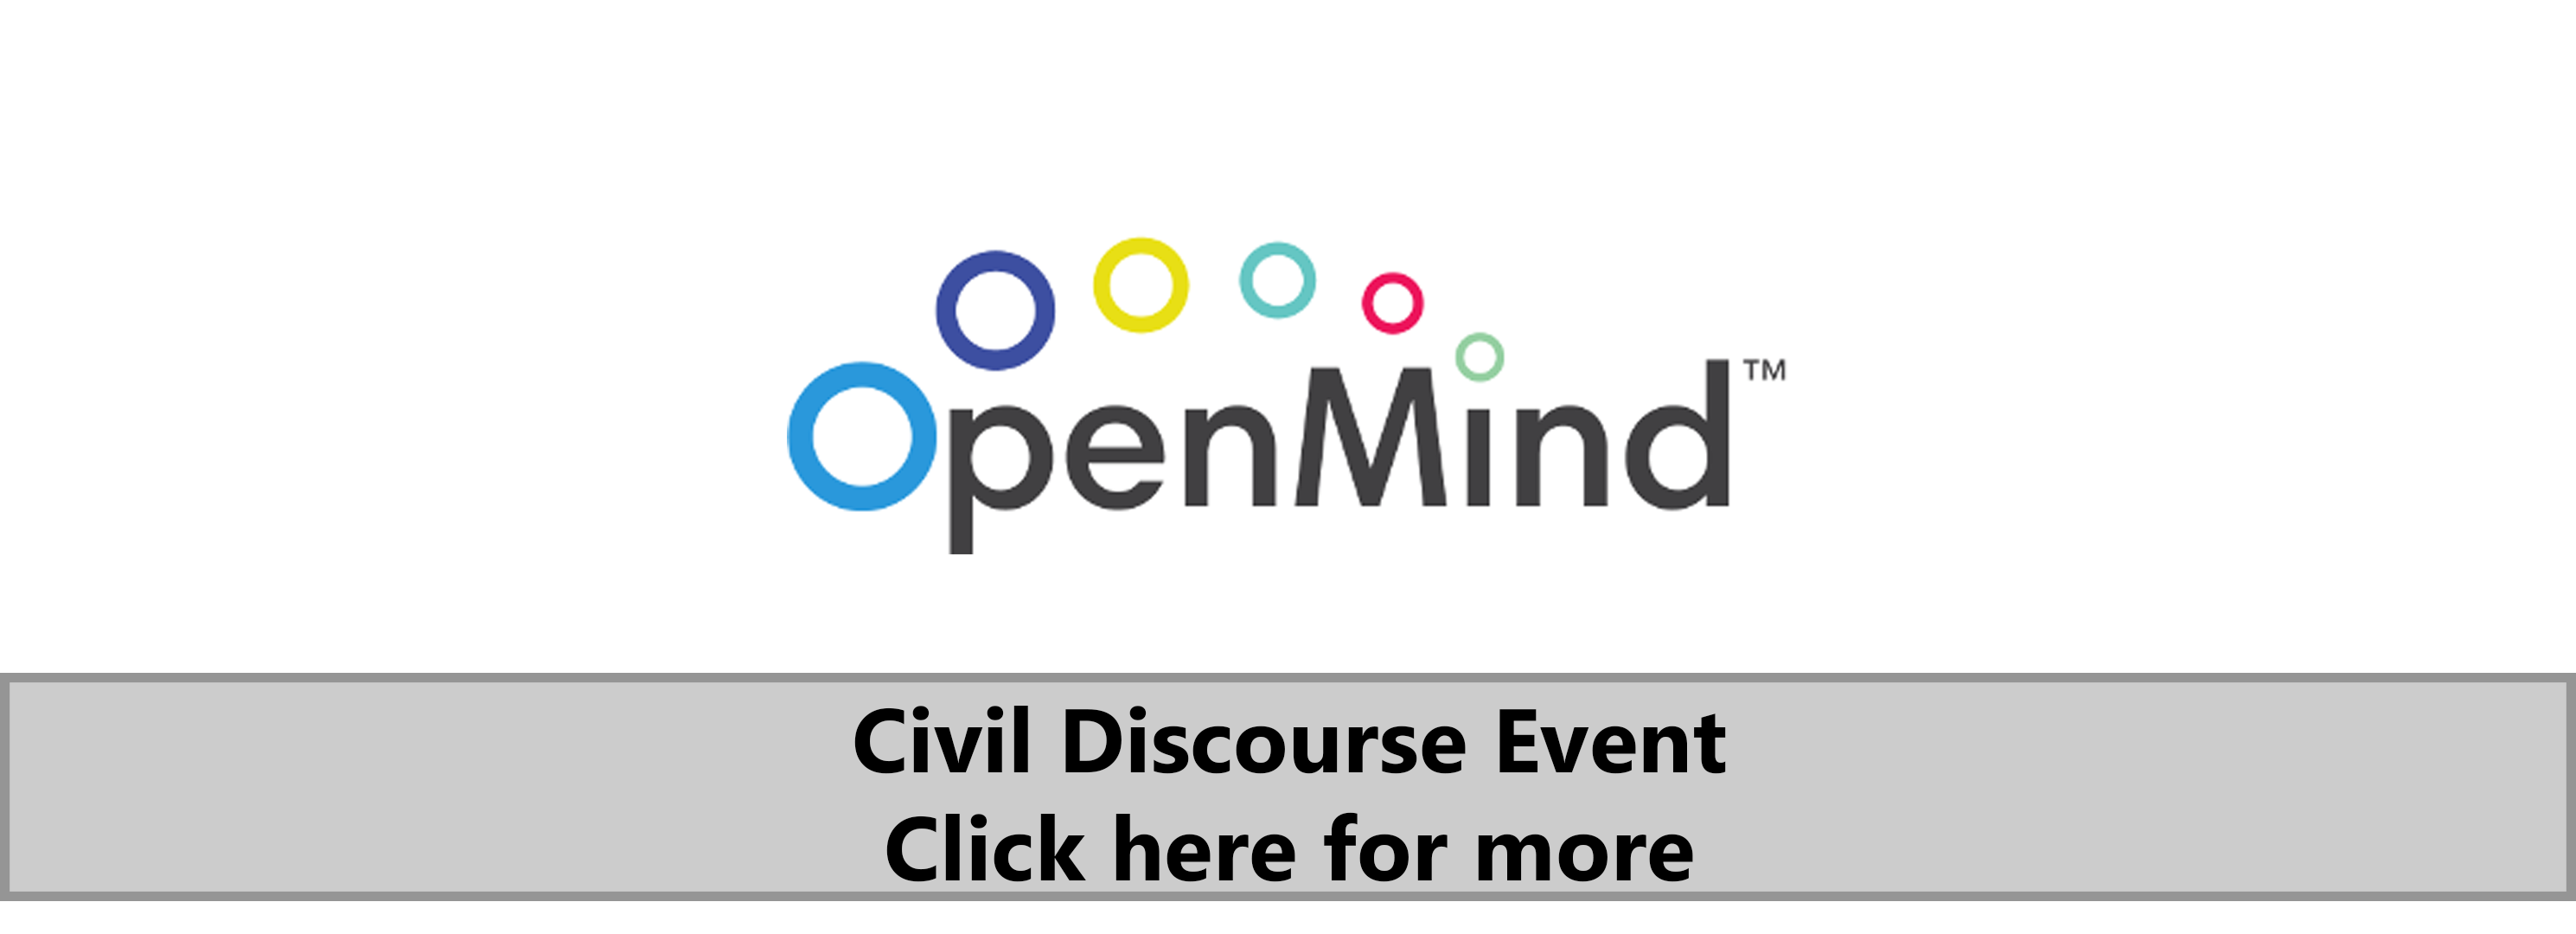 Civil Discourse Event. Click here for more.